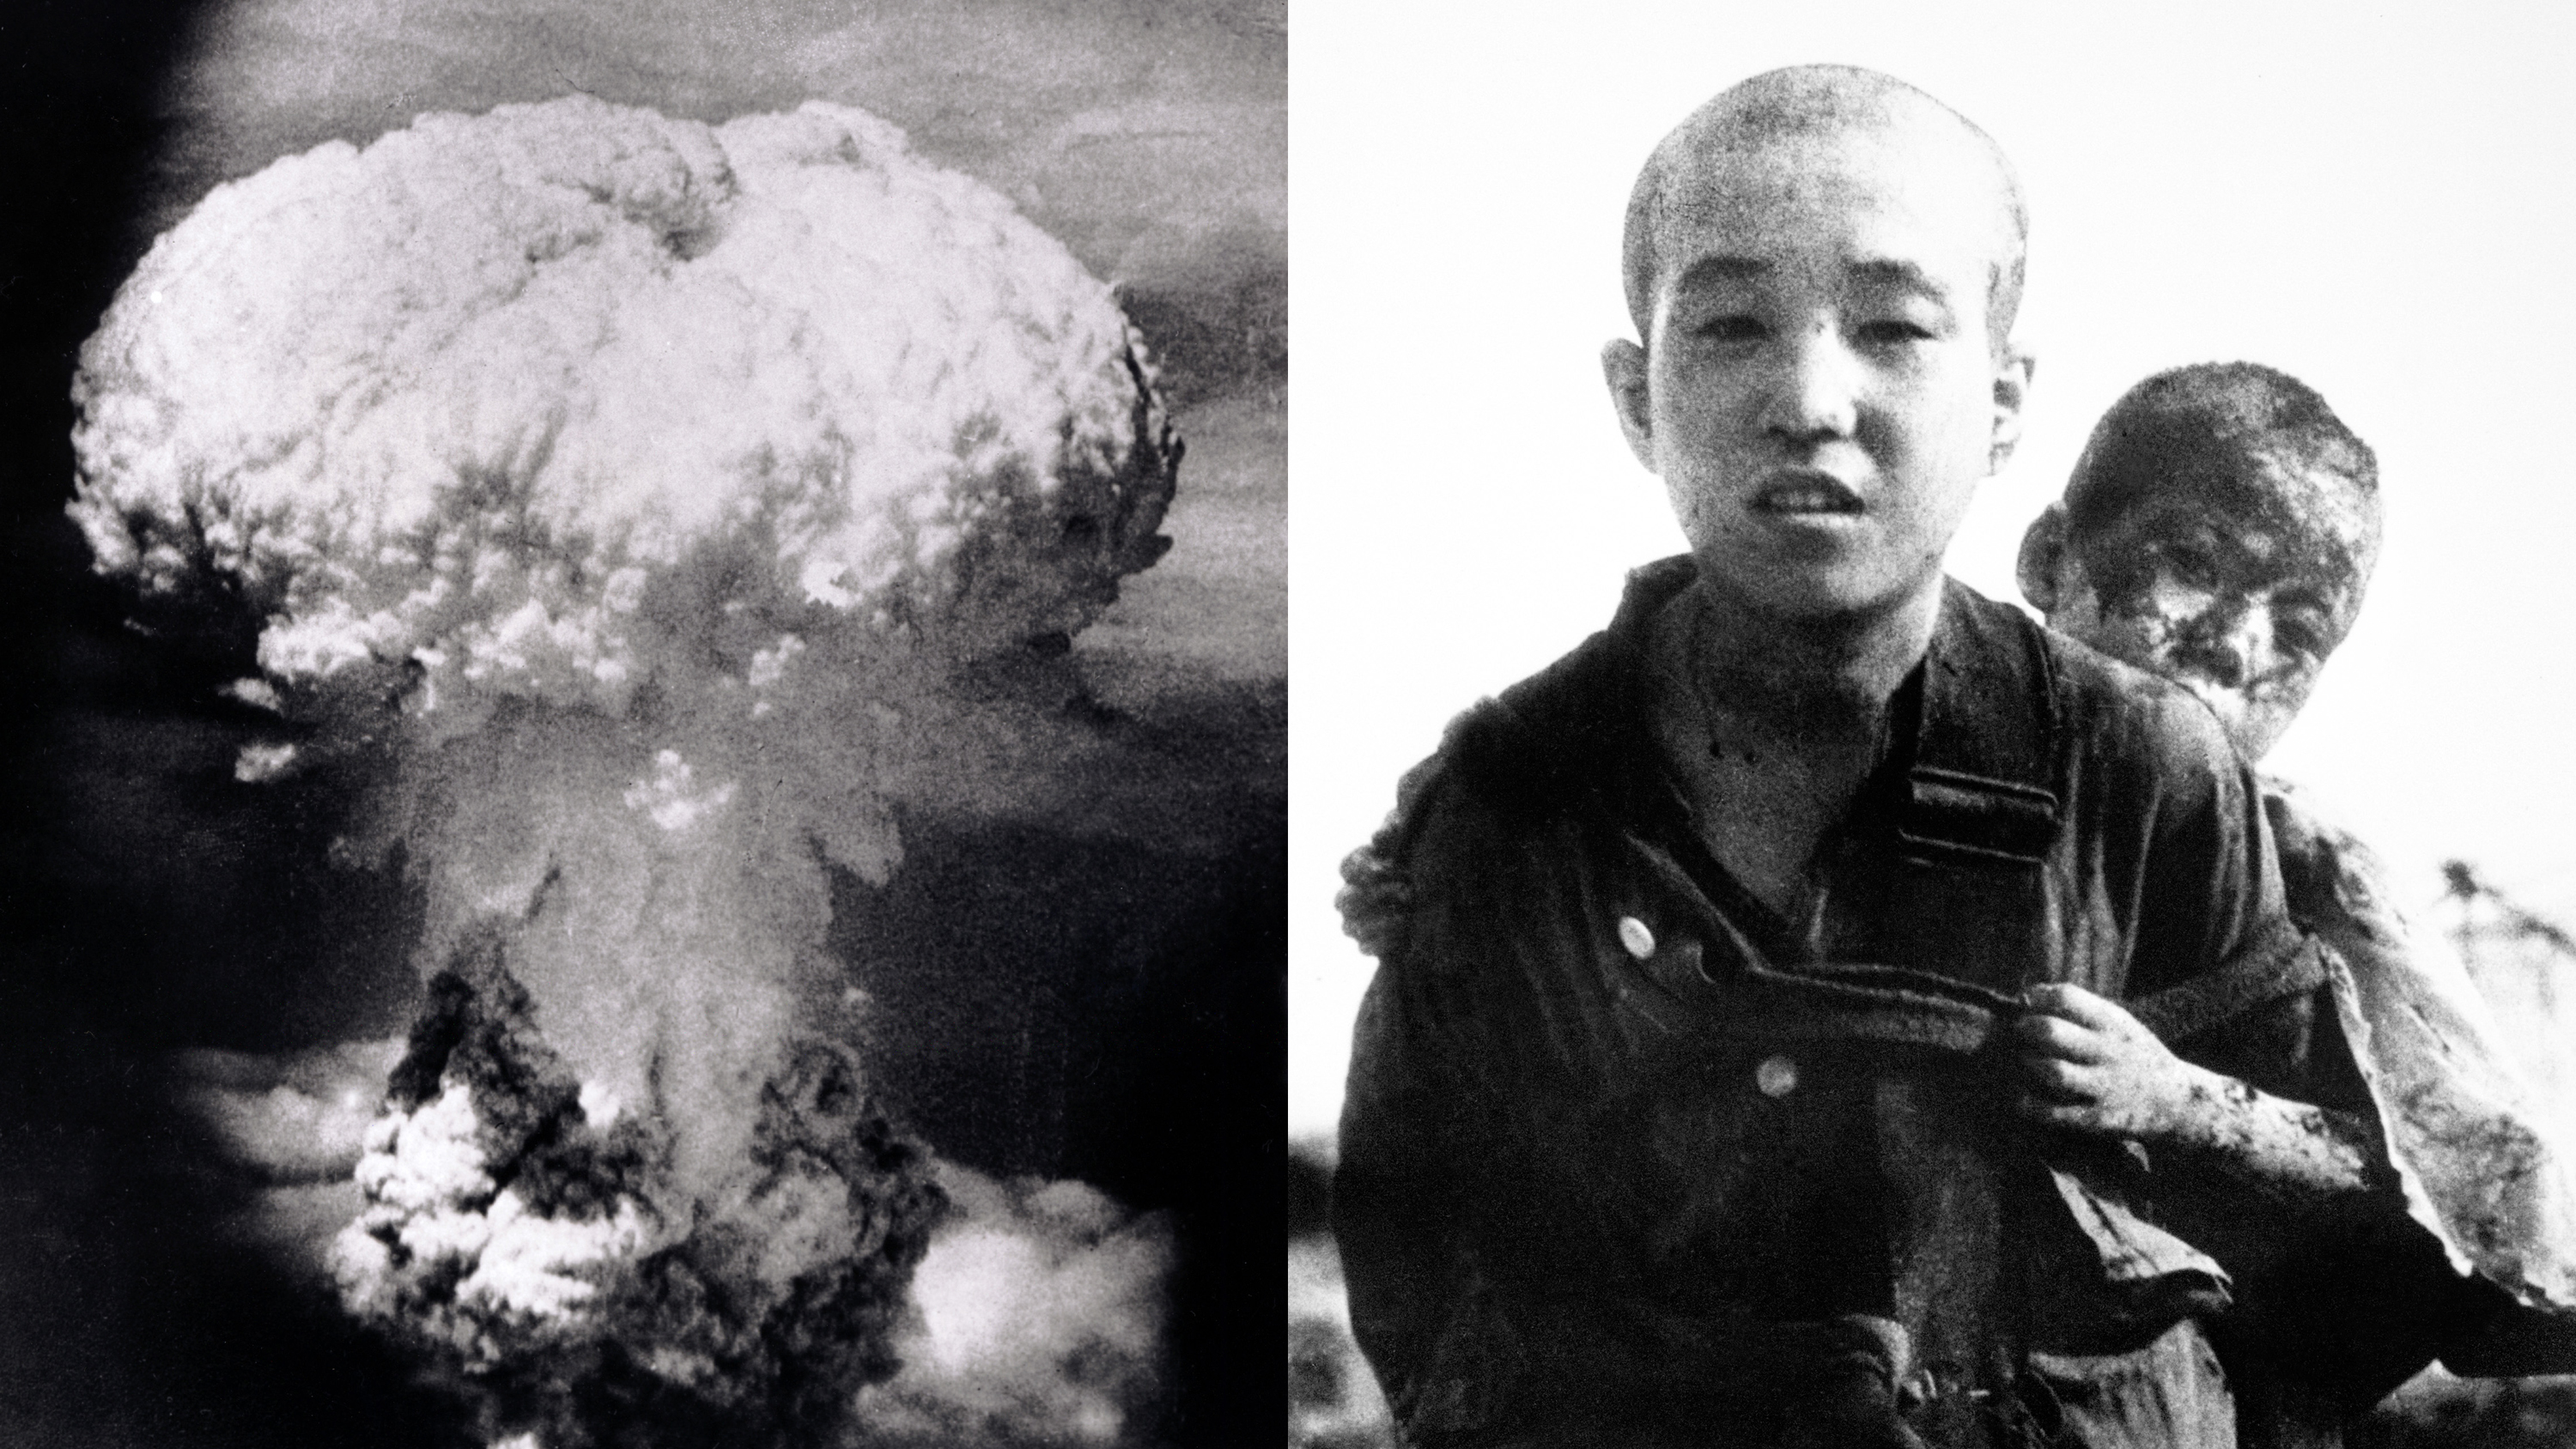 atomic bomb hiroshima and nagasaki essay Hiroshima & nagasaki the attack on hiroshima and nagasaki the manhattan project and the bombings of hiroshima/nagasaki atomic bomb in world war 2 hiroshima, nagasaki, and the world men of today aremore interested in power and pelf the atomic bomb in world war ii.